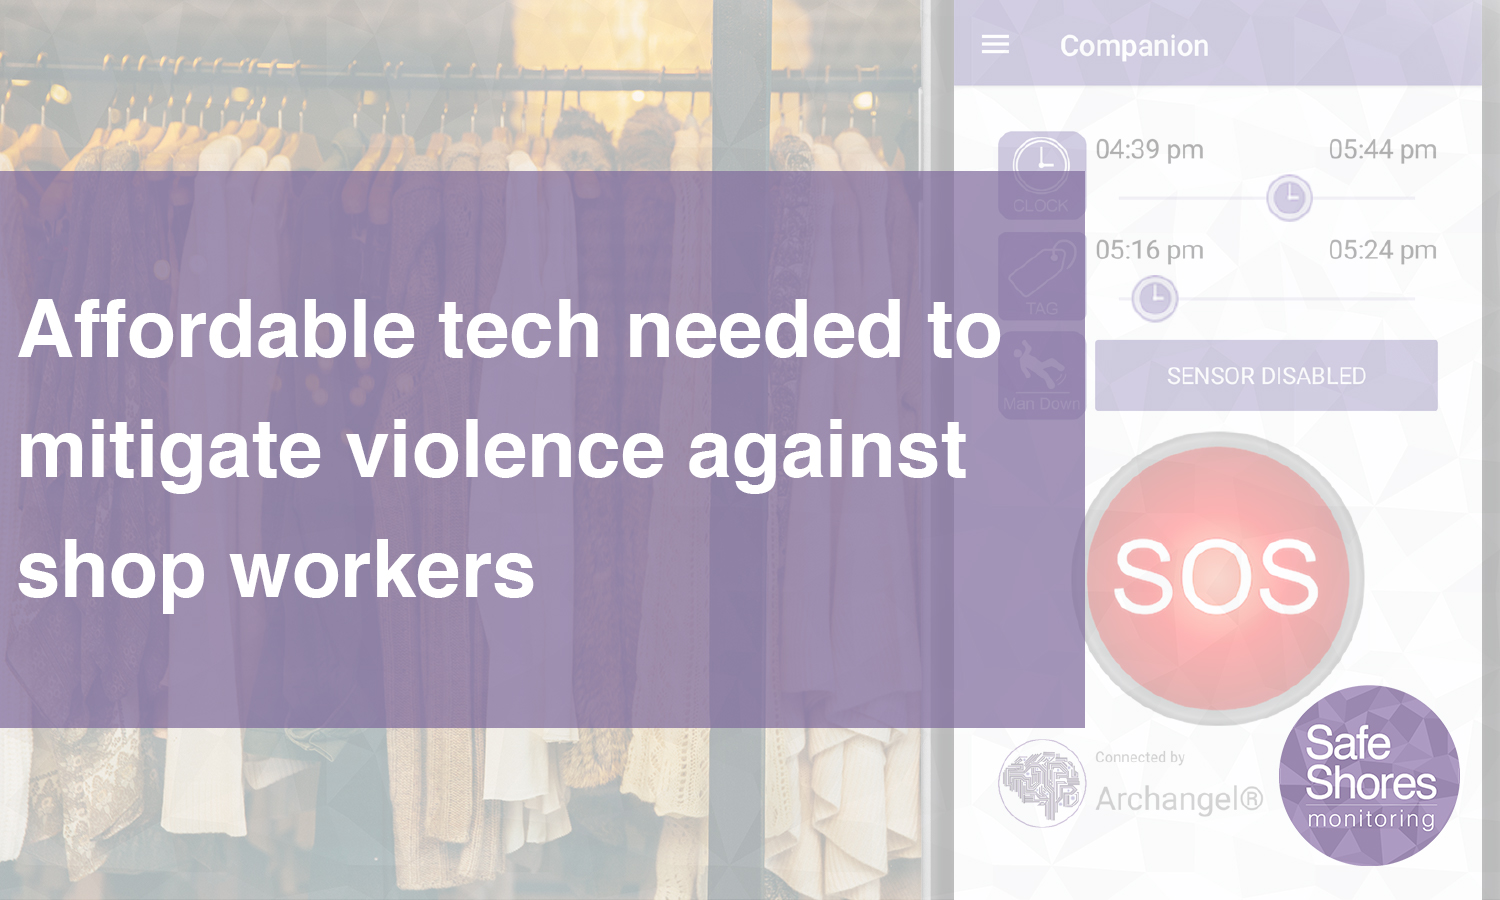 Affordable tech to mitigate shop worker violence